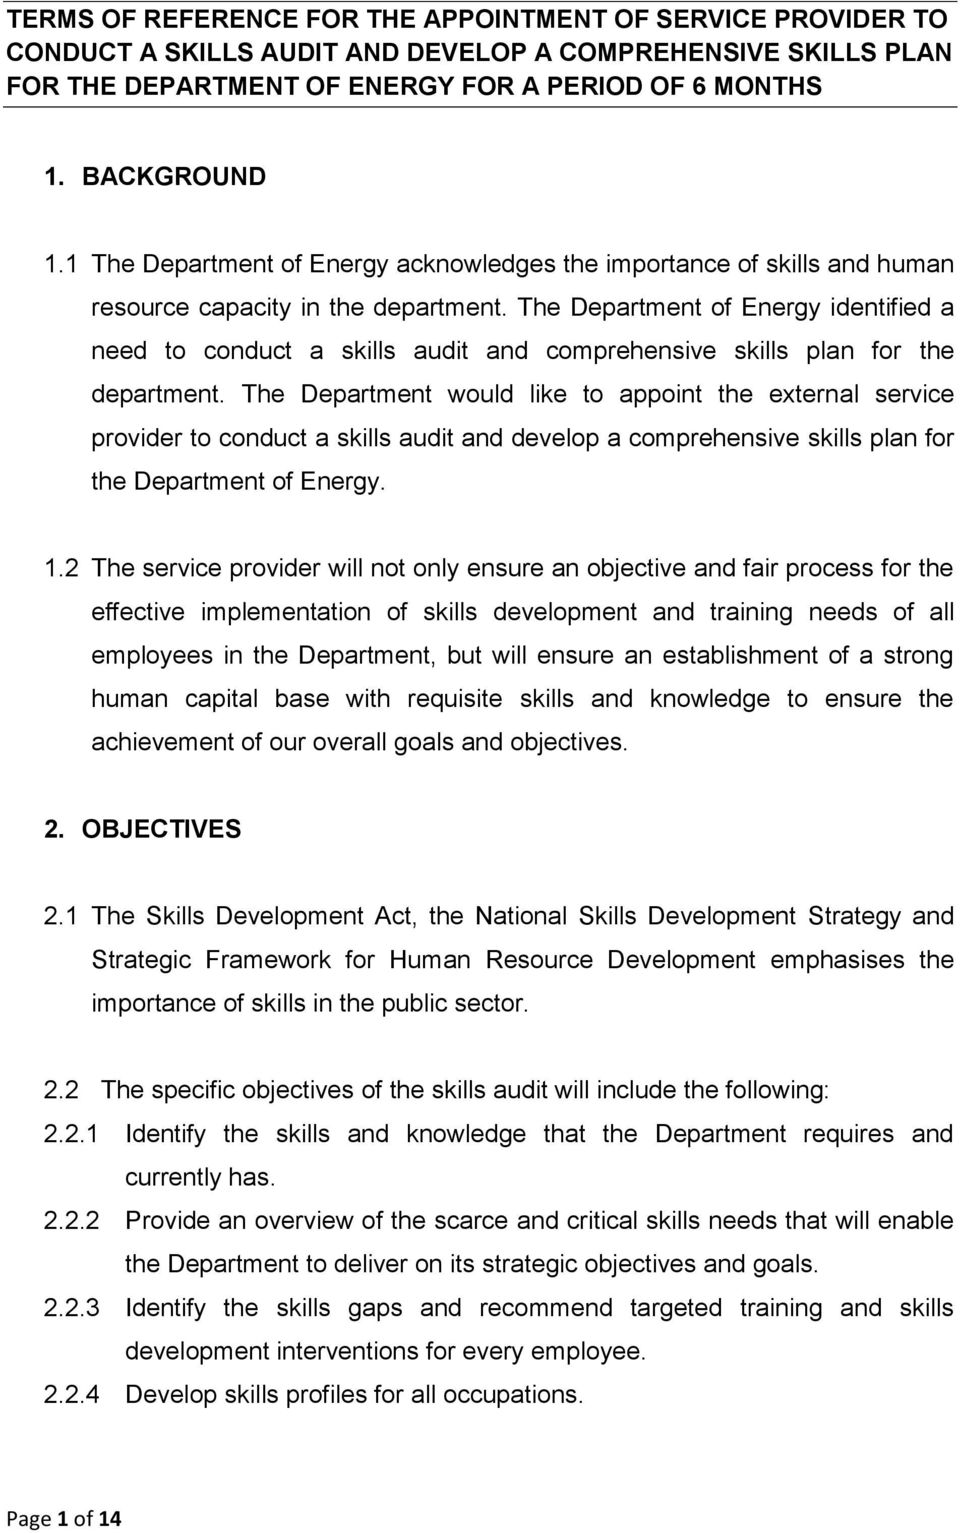 The Department of Energy identified a need to conduct a skills audit and comprehensive skills plan for the department.